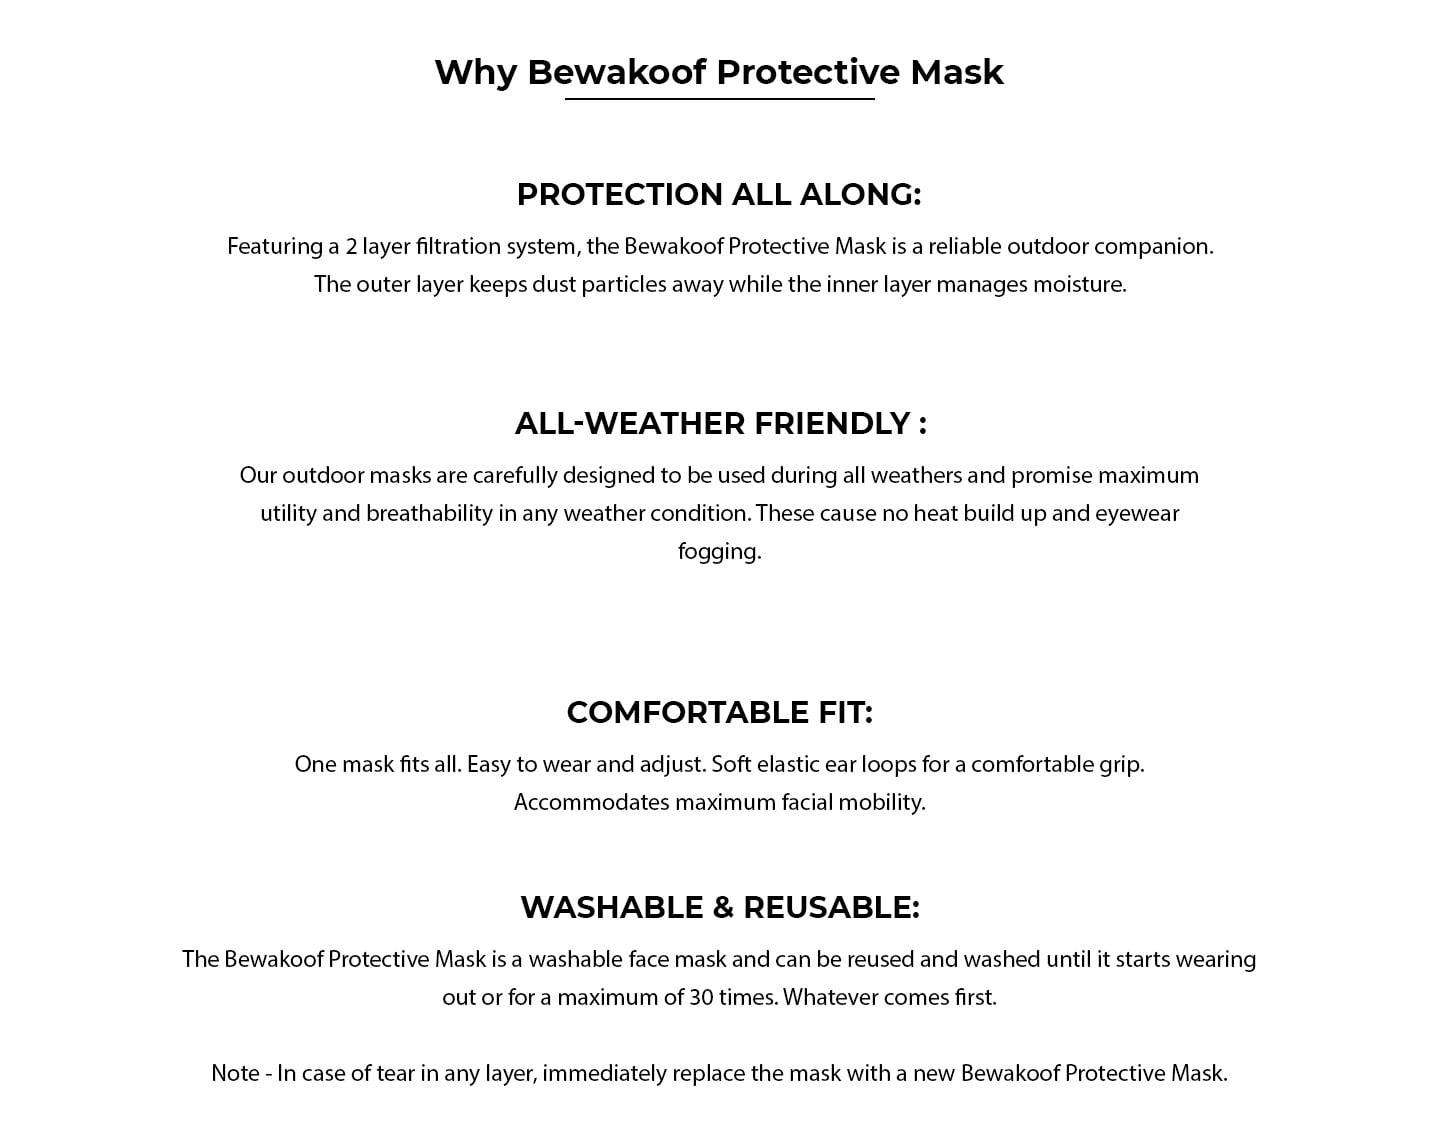 2-Layer Everyday Protective Masks - Pack of 3 (X-Ray! Hello! Duur Reh!) Description Image Website 1@Bewakoof.com